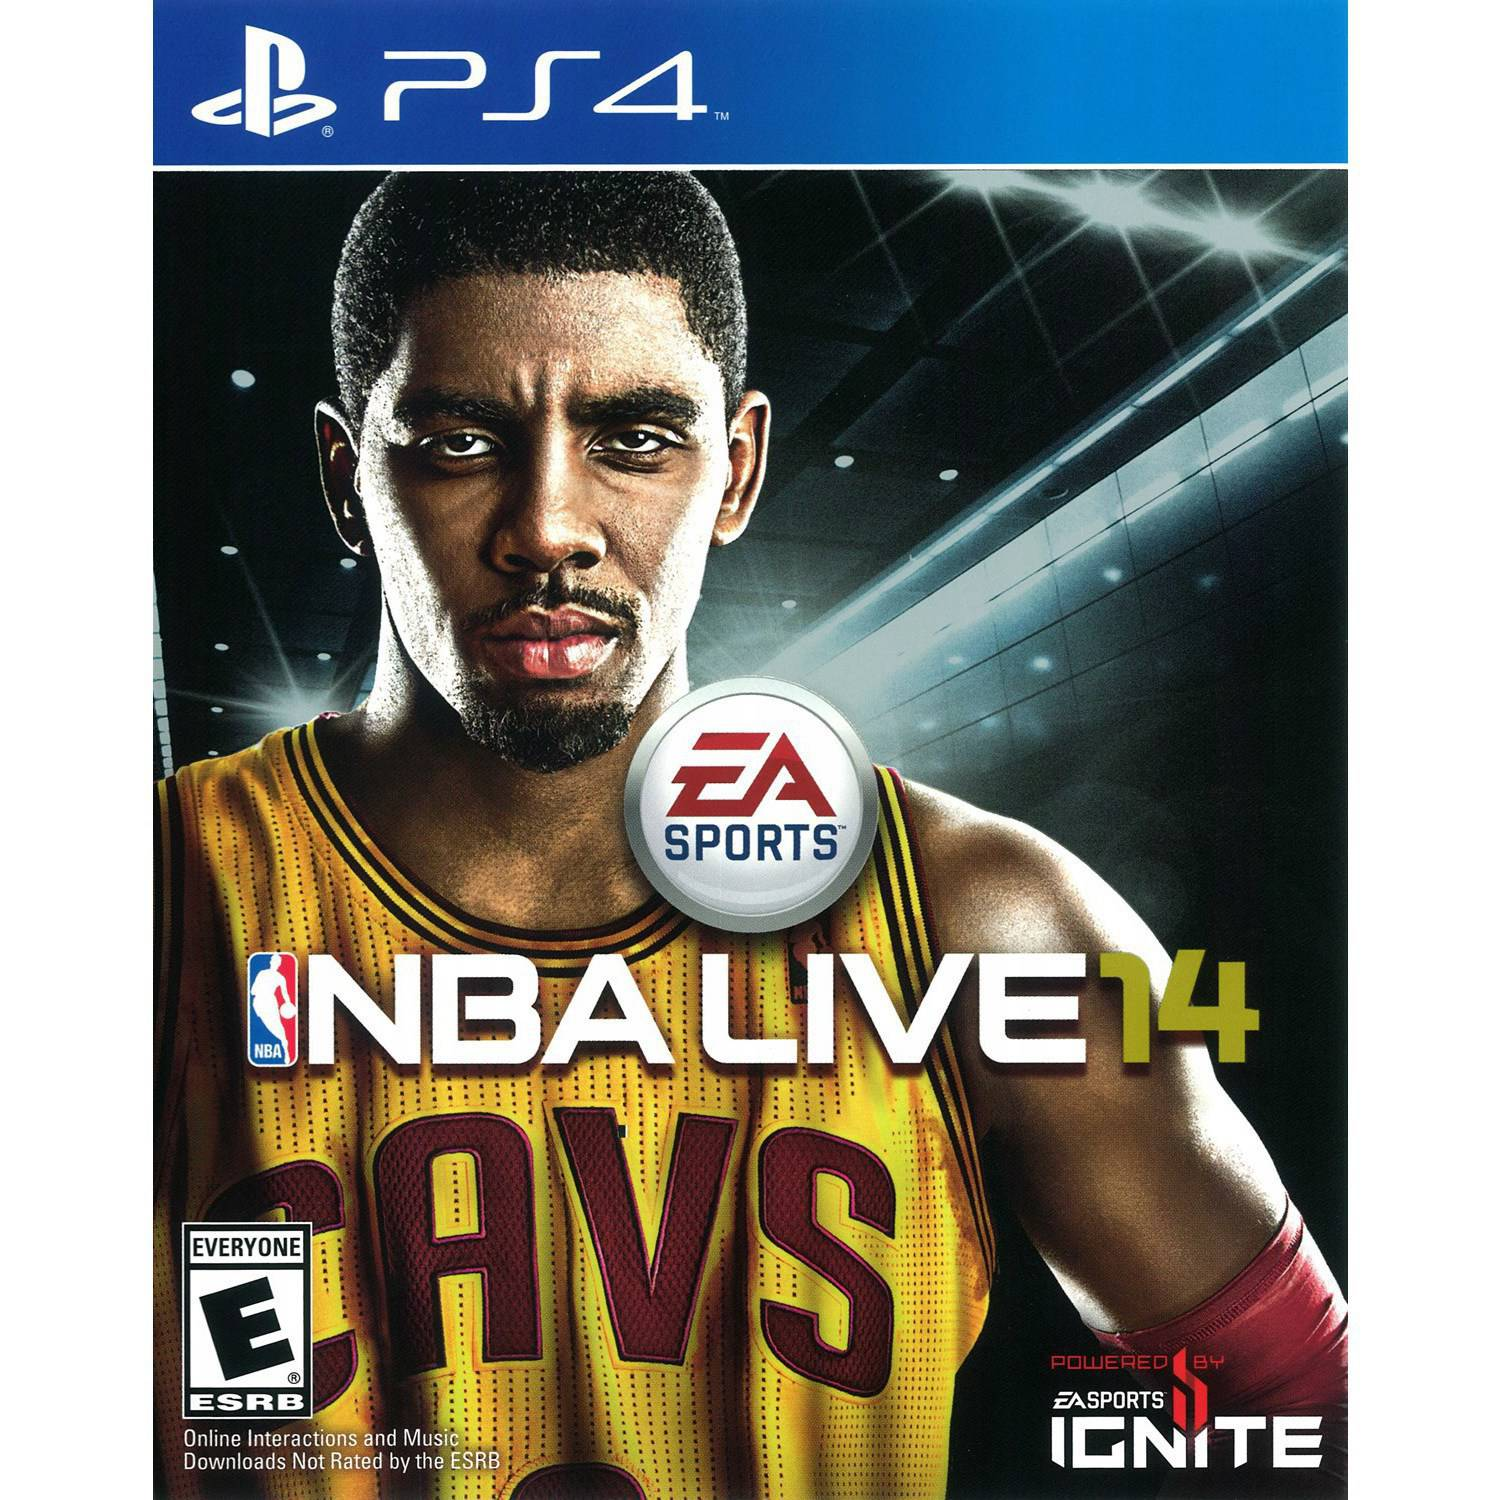 NBA Live 14, Electronic Arts, PlayStation 4, 014633730708